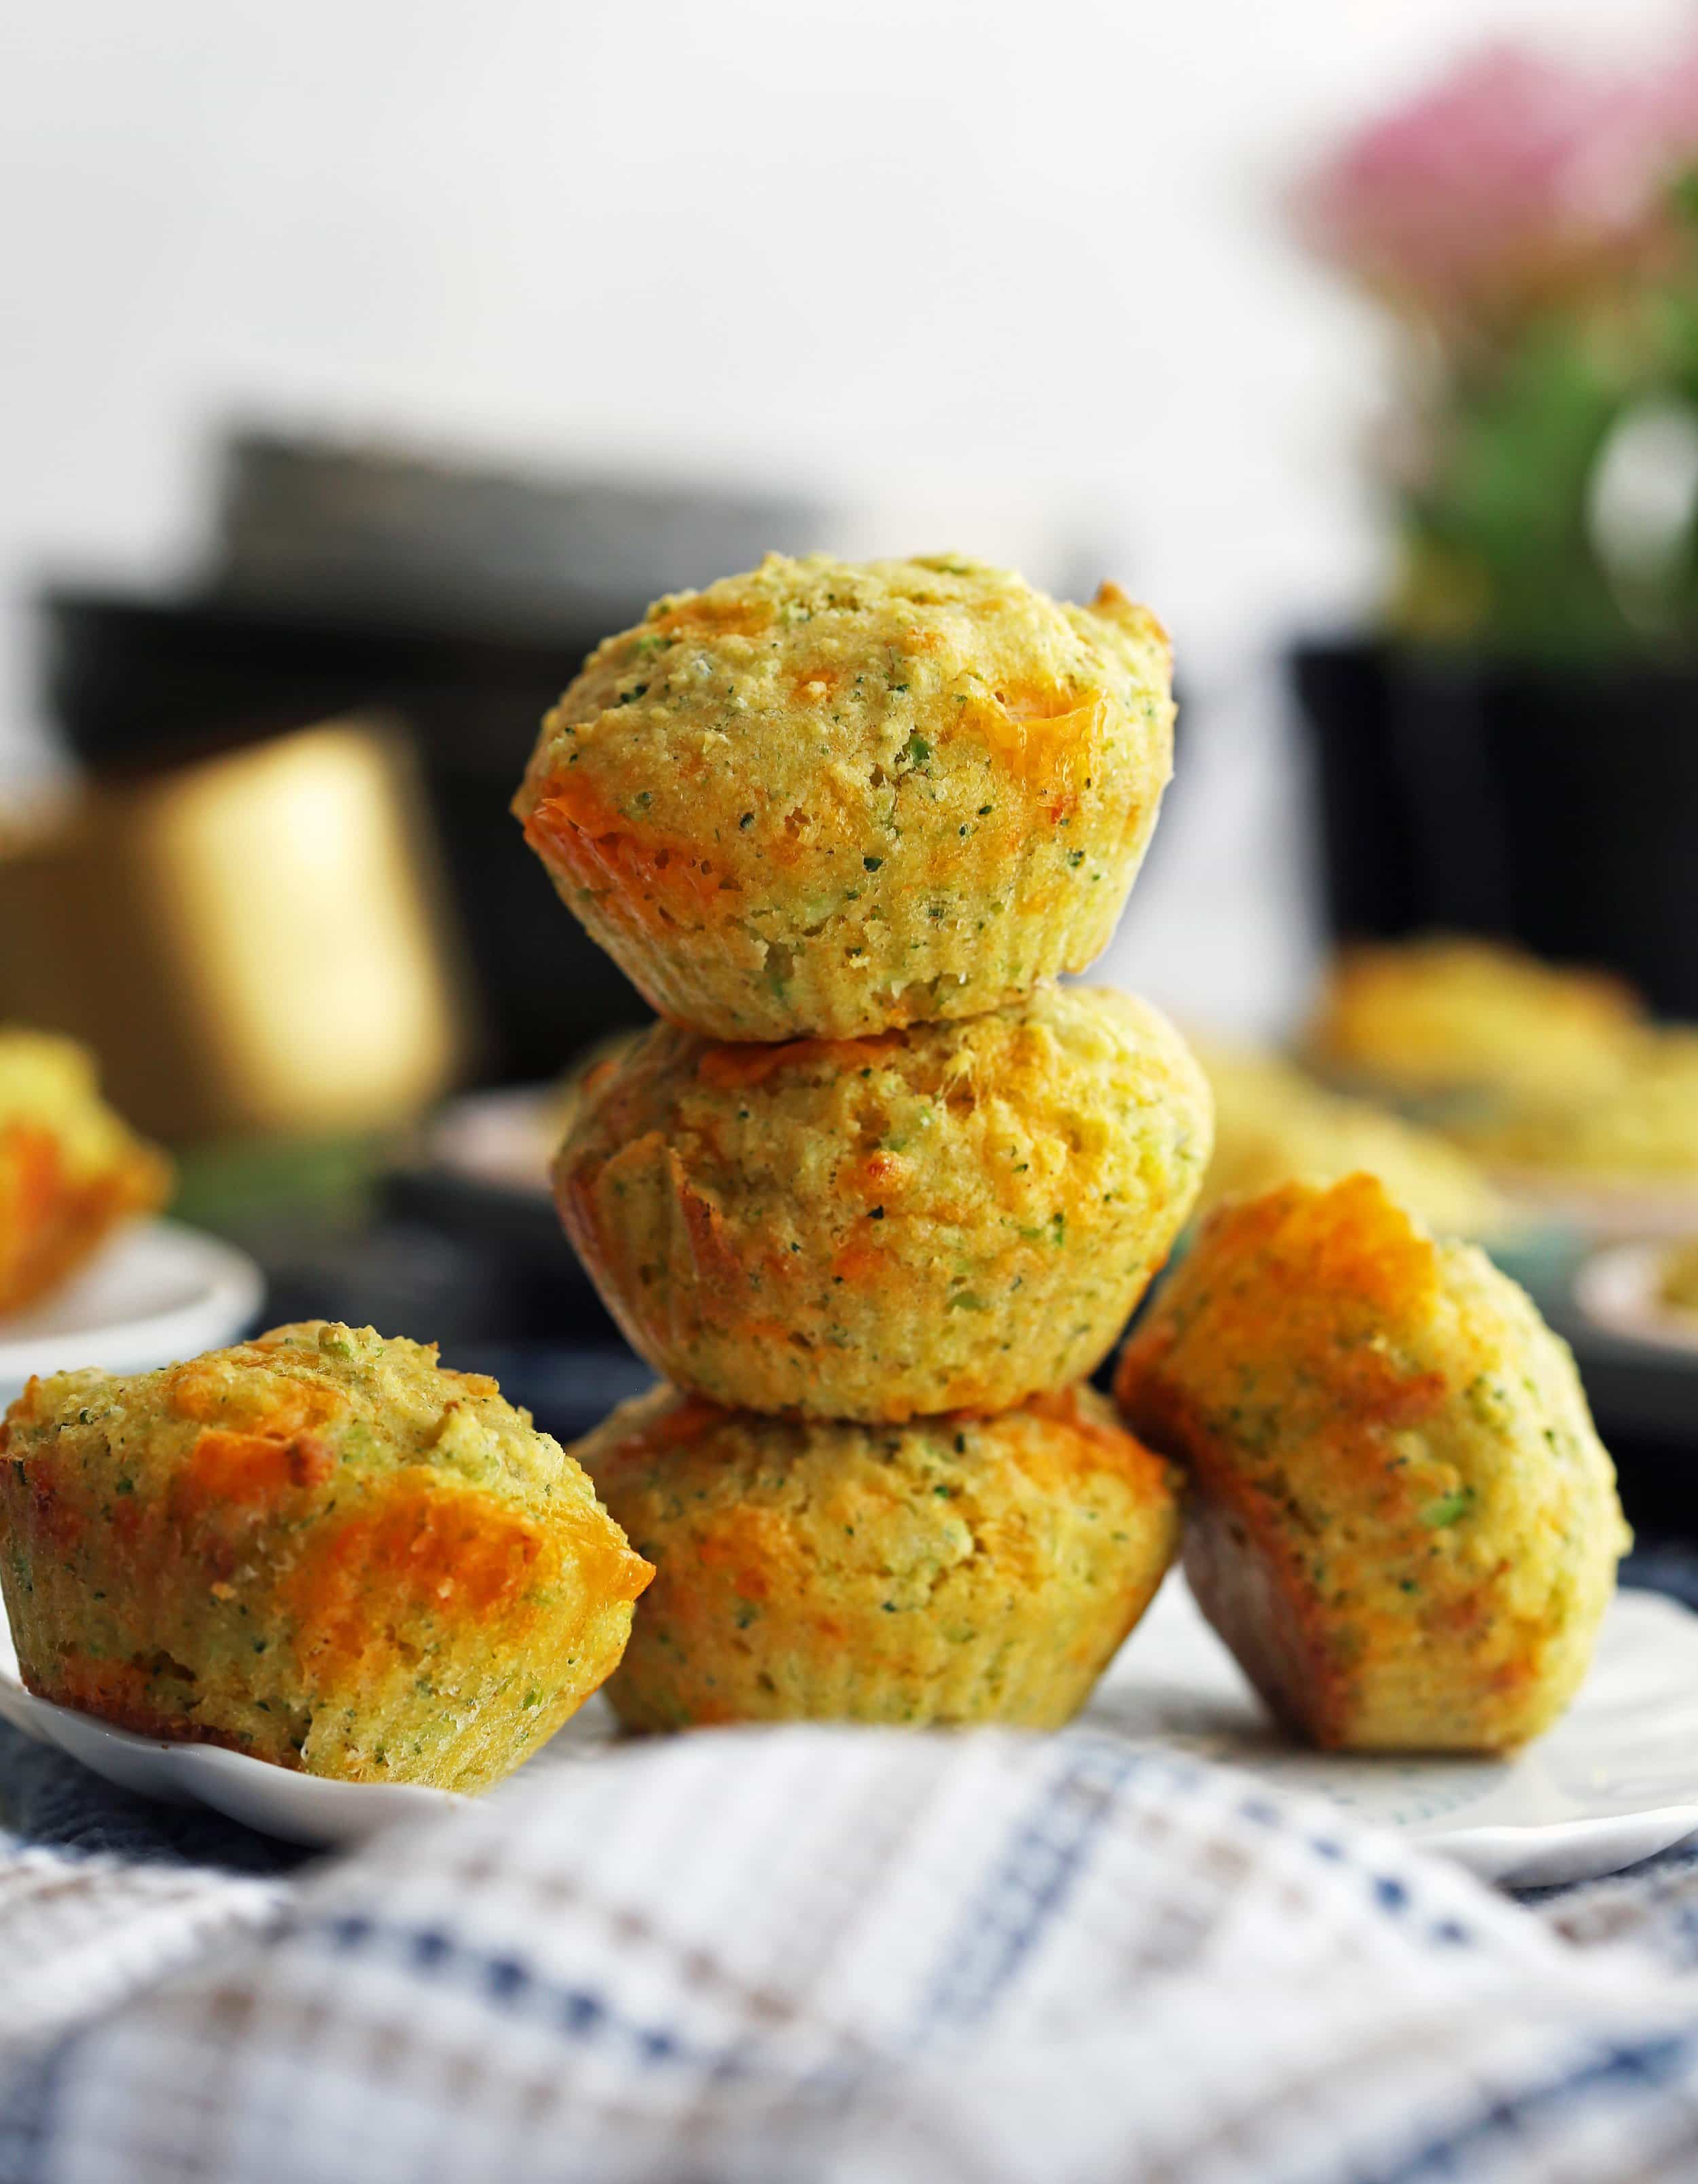 A side view of three Broccoli Cheddar Cornbread Muffins stacked on top one another with two more muffins on the side.